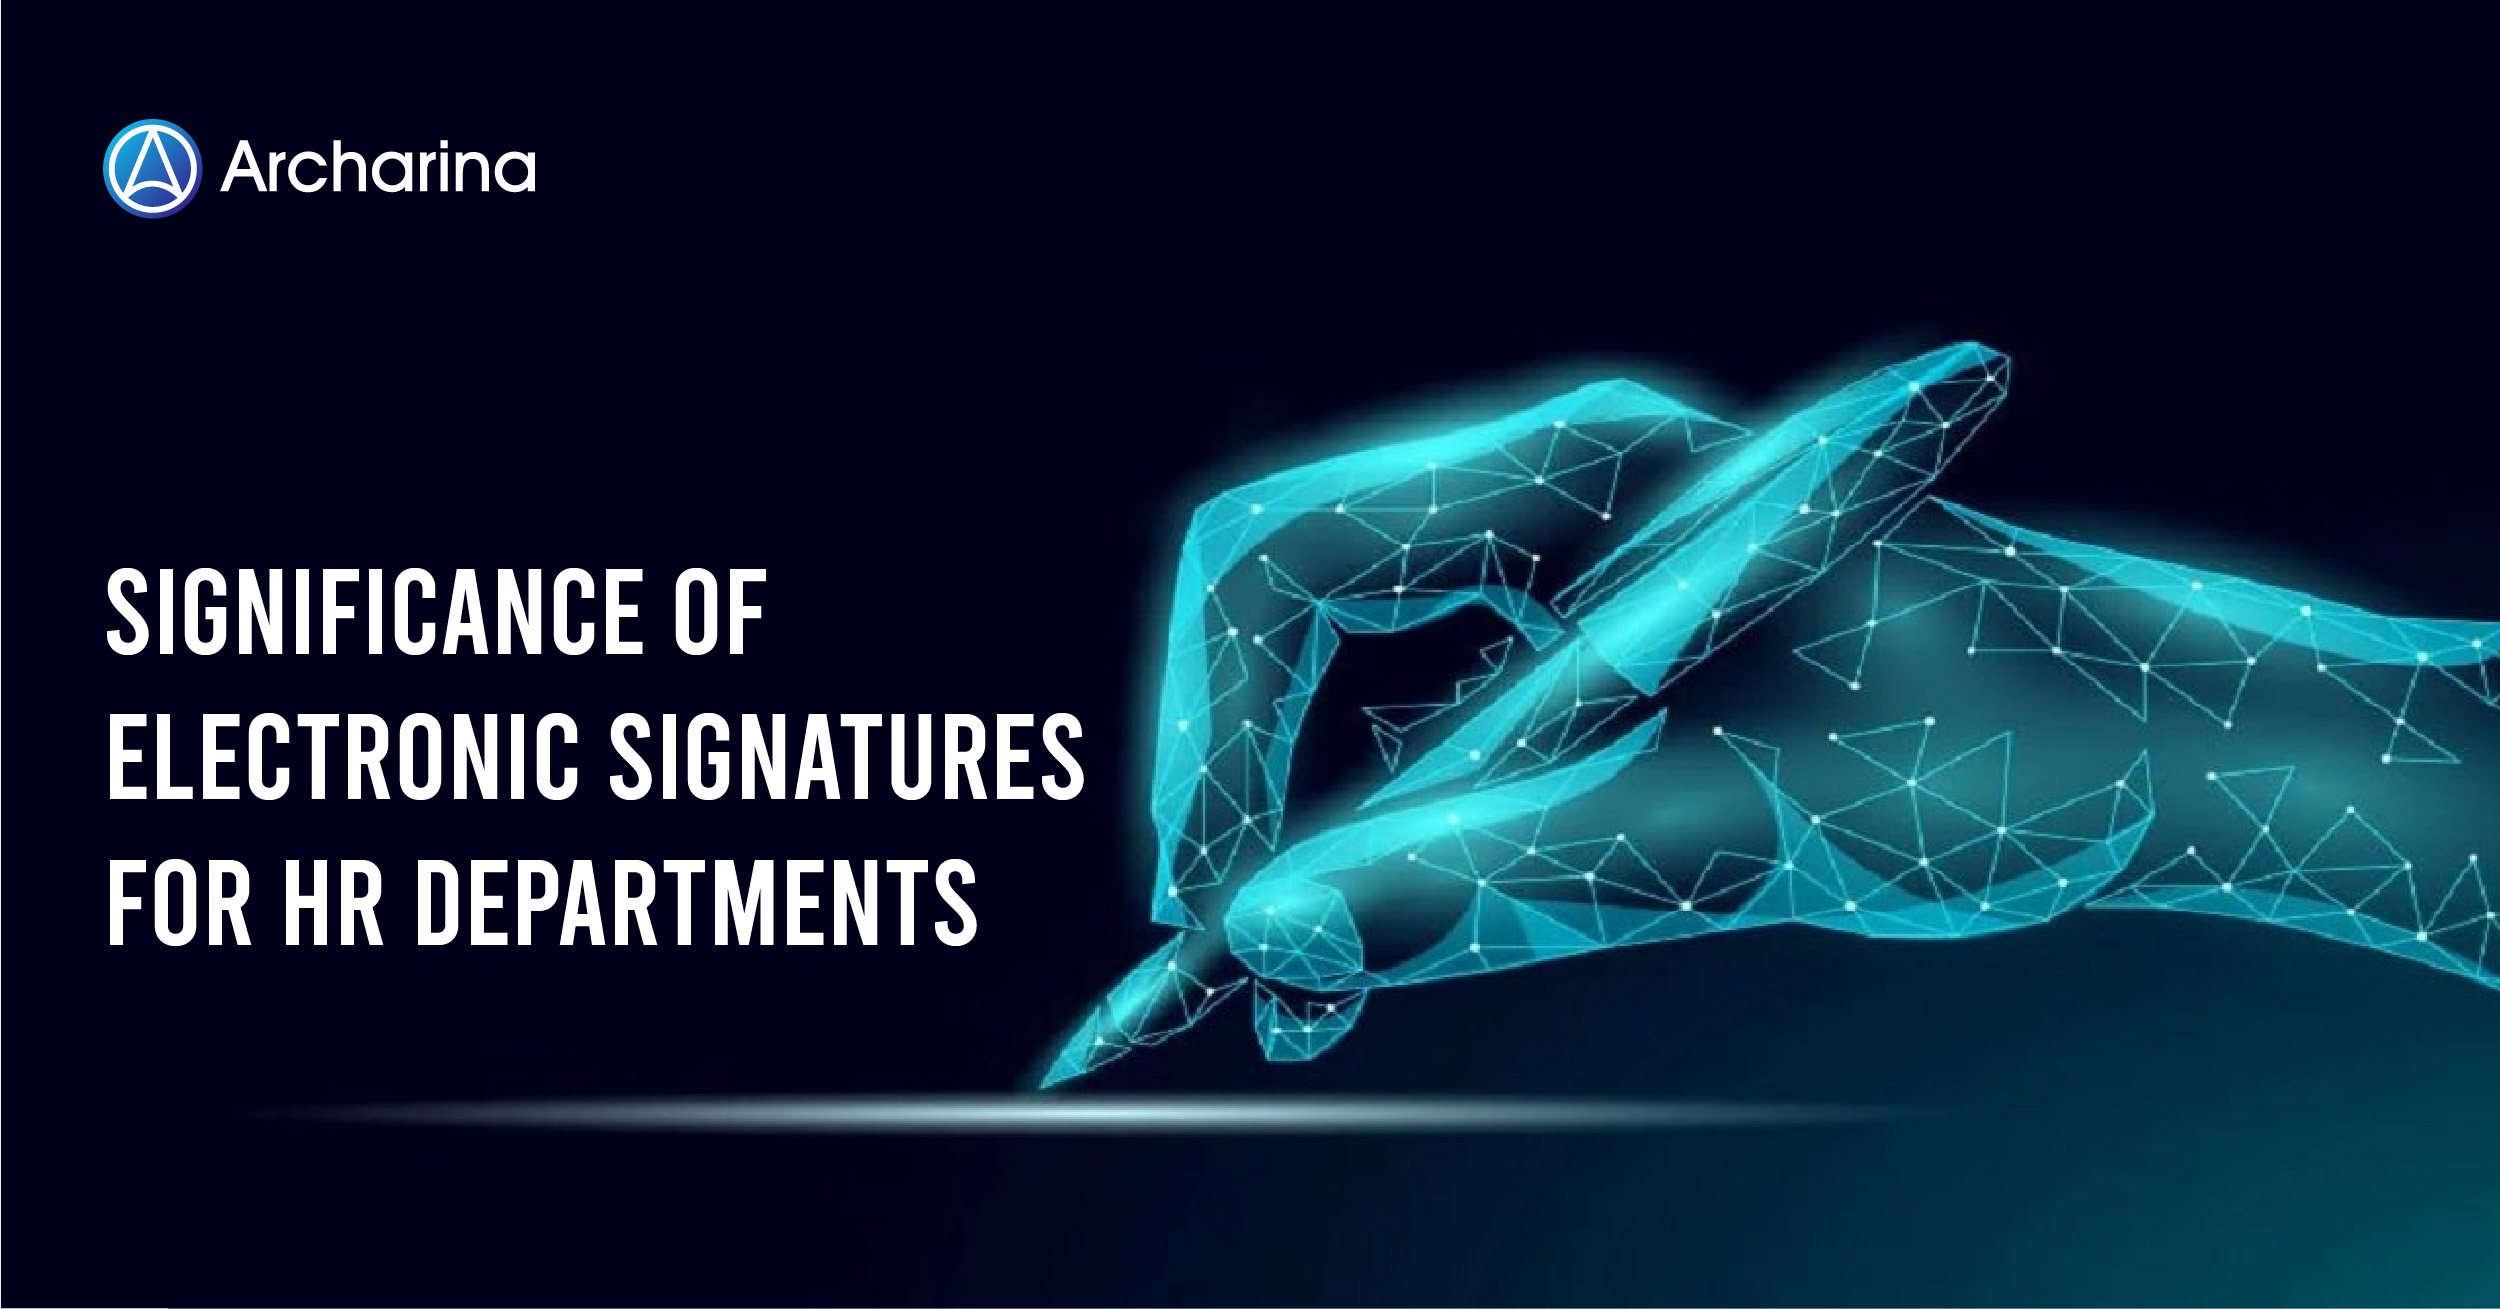 Significance of Electronic Signatures for HR Departments